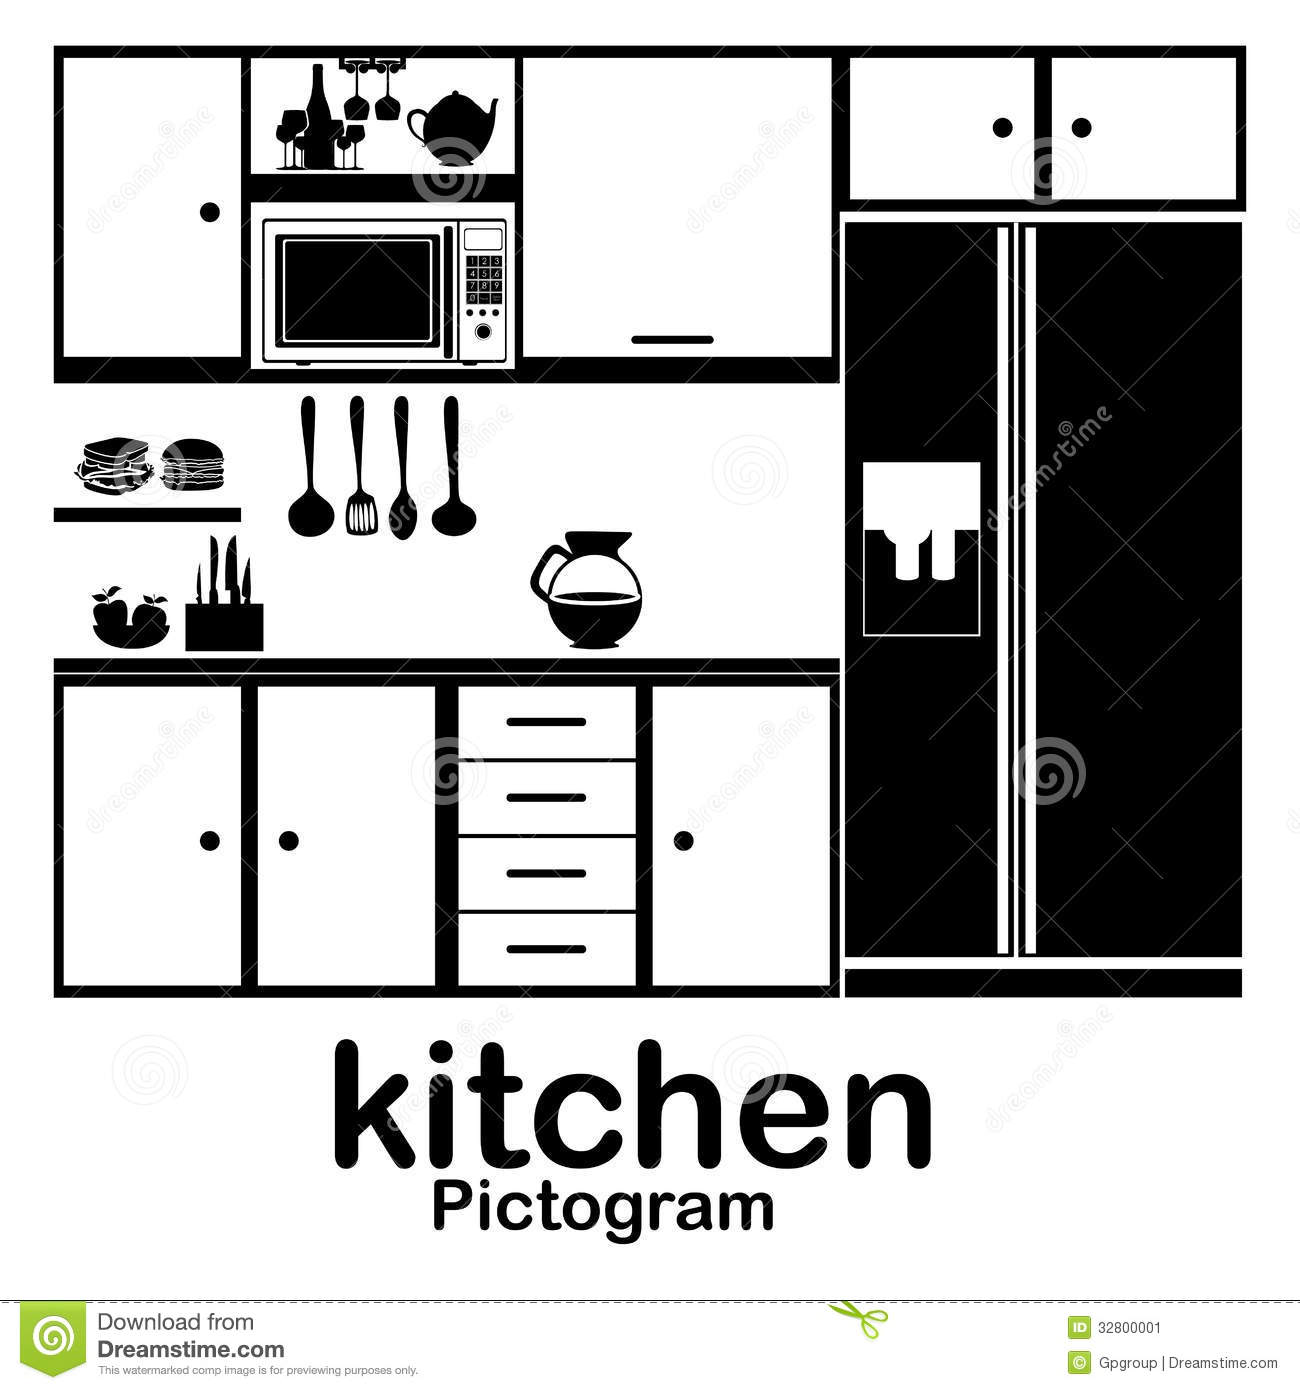 Kitchen stock vector. Image of cooker, fridge, collection